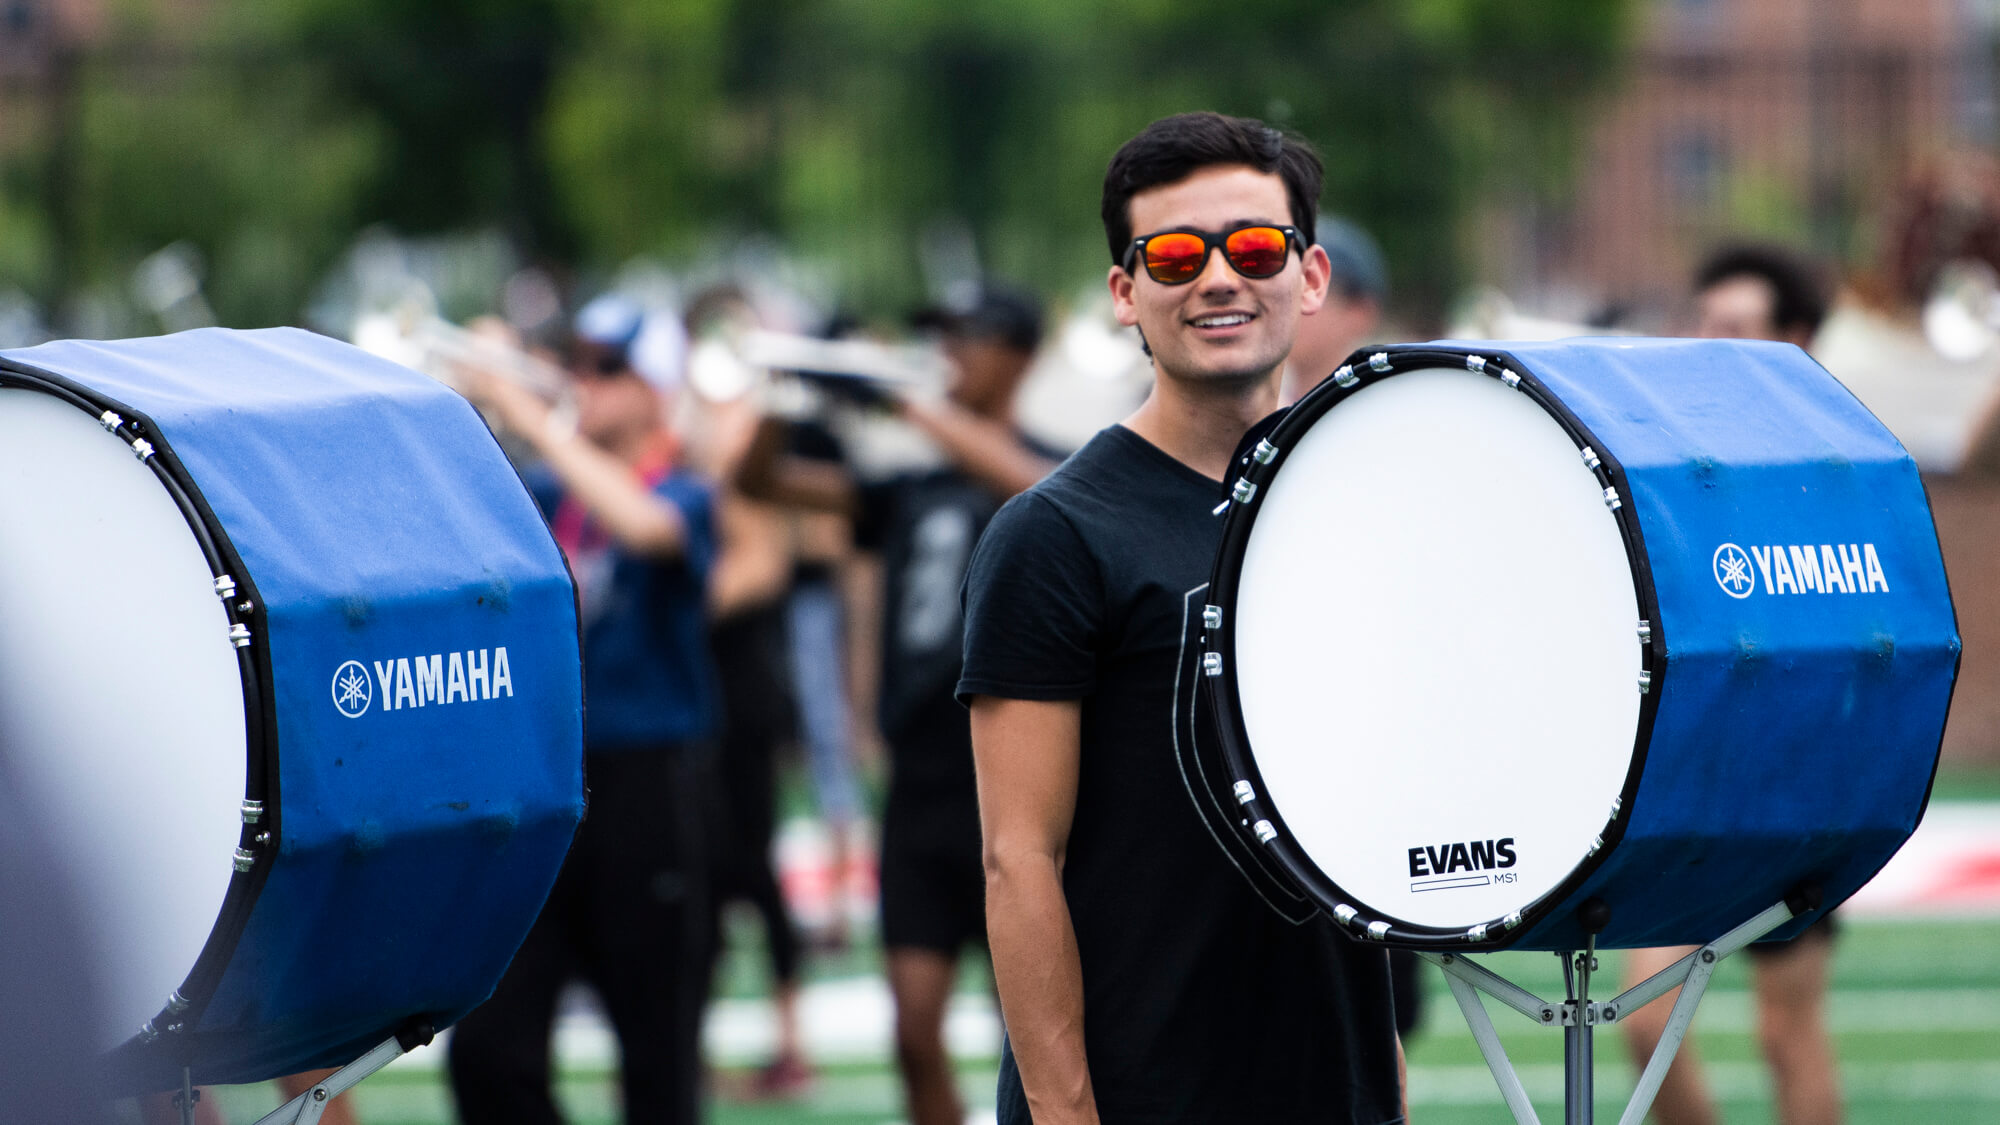 Bluecoats Spring Training 2019